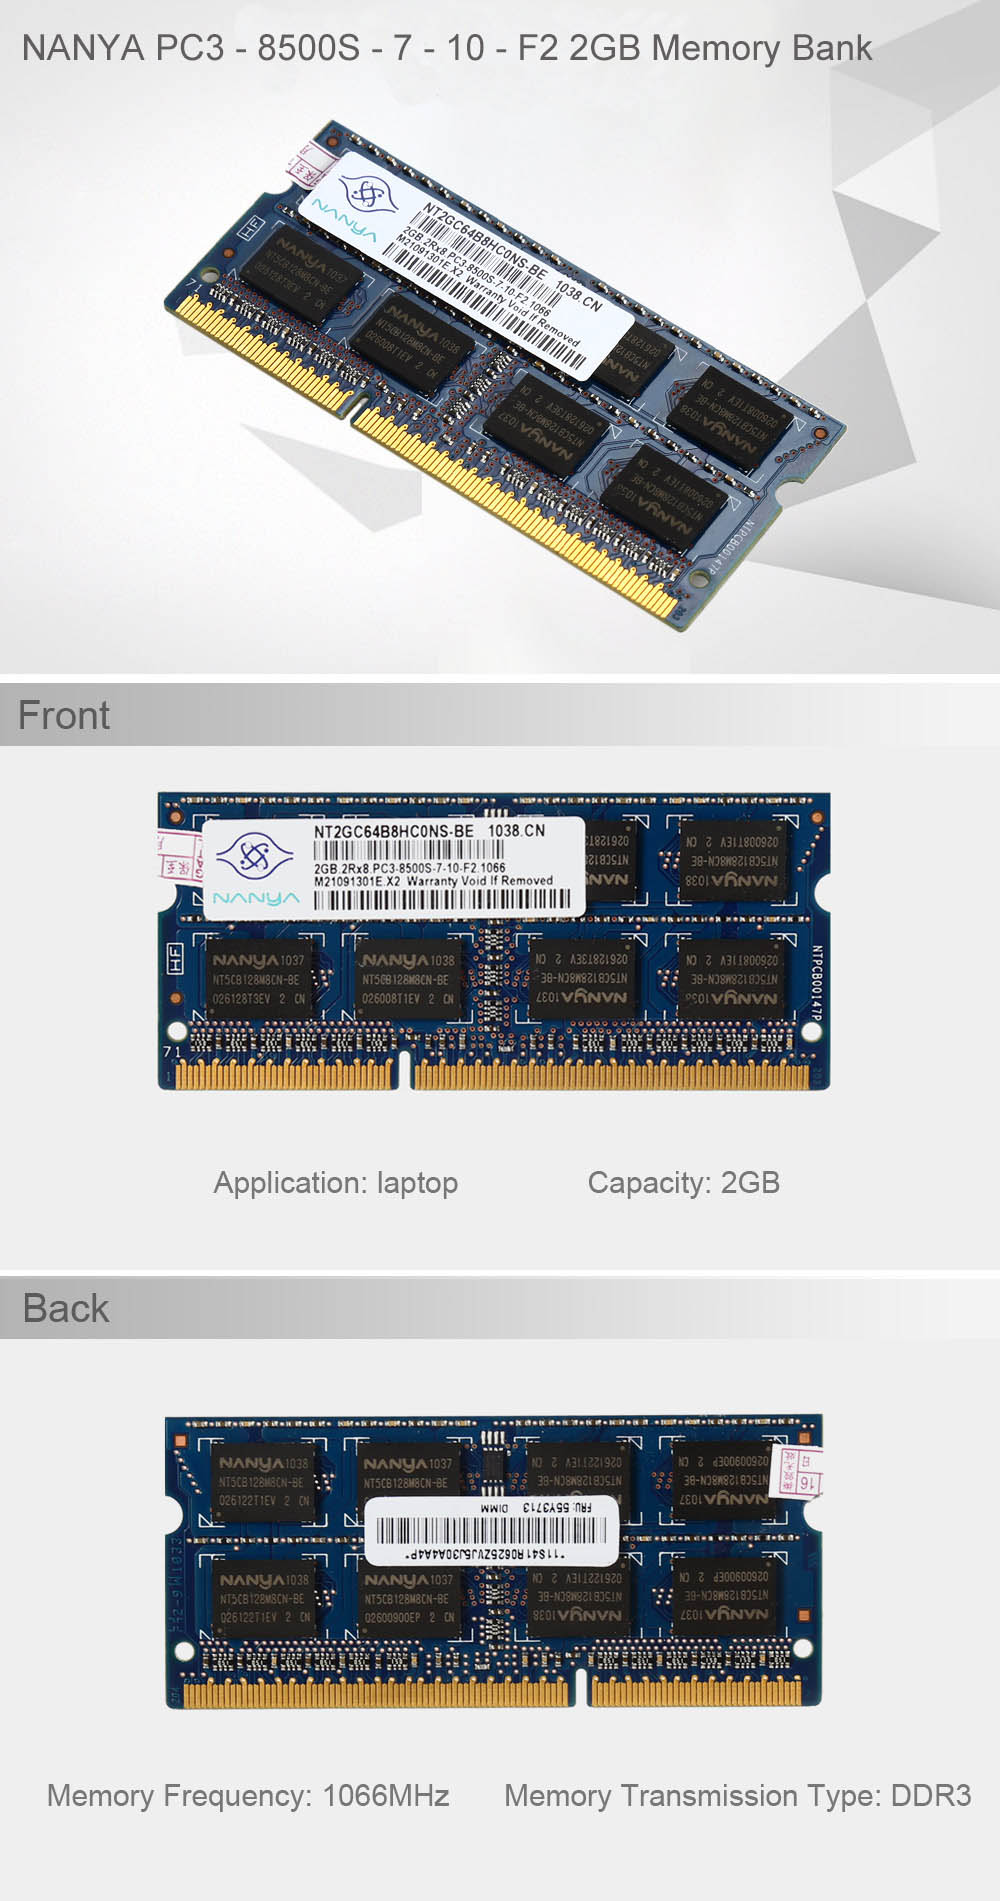 NANYA PC3 - 8500S - 7 - 10 - F2 2GB DDR3 Memory Bank 1066MHz 204 Pin